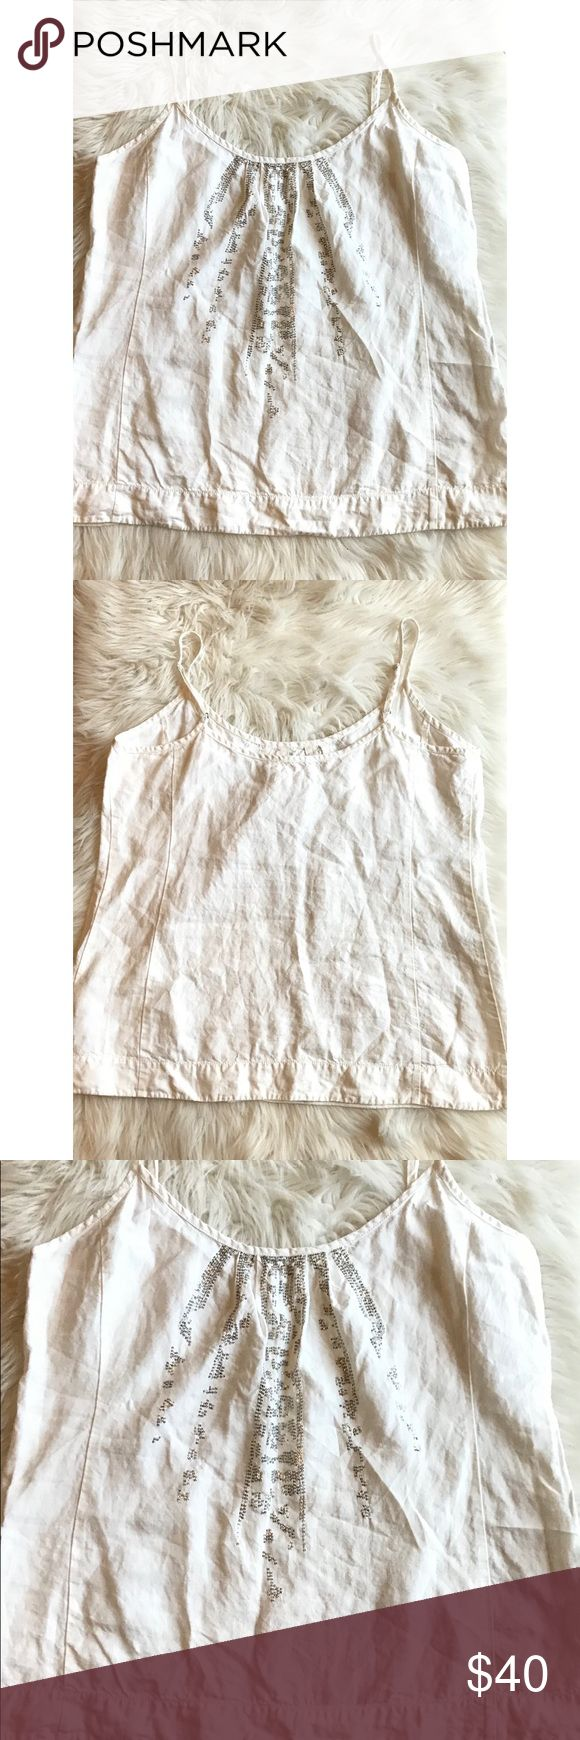 "Eileen Fisher Women's Size Large White Beaded Tank Eileen Fisher Women's Size Large White Dressy Tank With Silver Beaded Details. Size Large. 100% Organic Linen. New Without Tags.   Armpit To Armpit 21""  Waist 43""  Shoulder To Hem 27"" Eileen Fisher Tops Tank Tops"